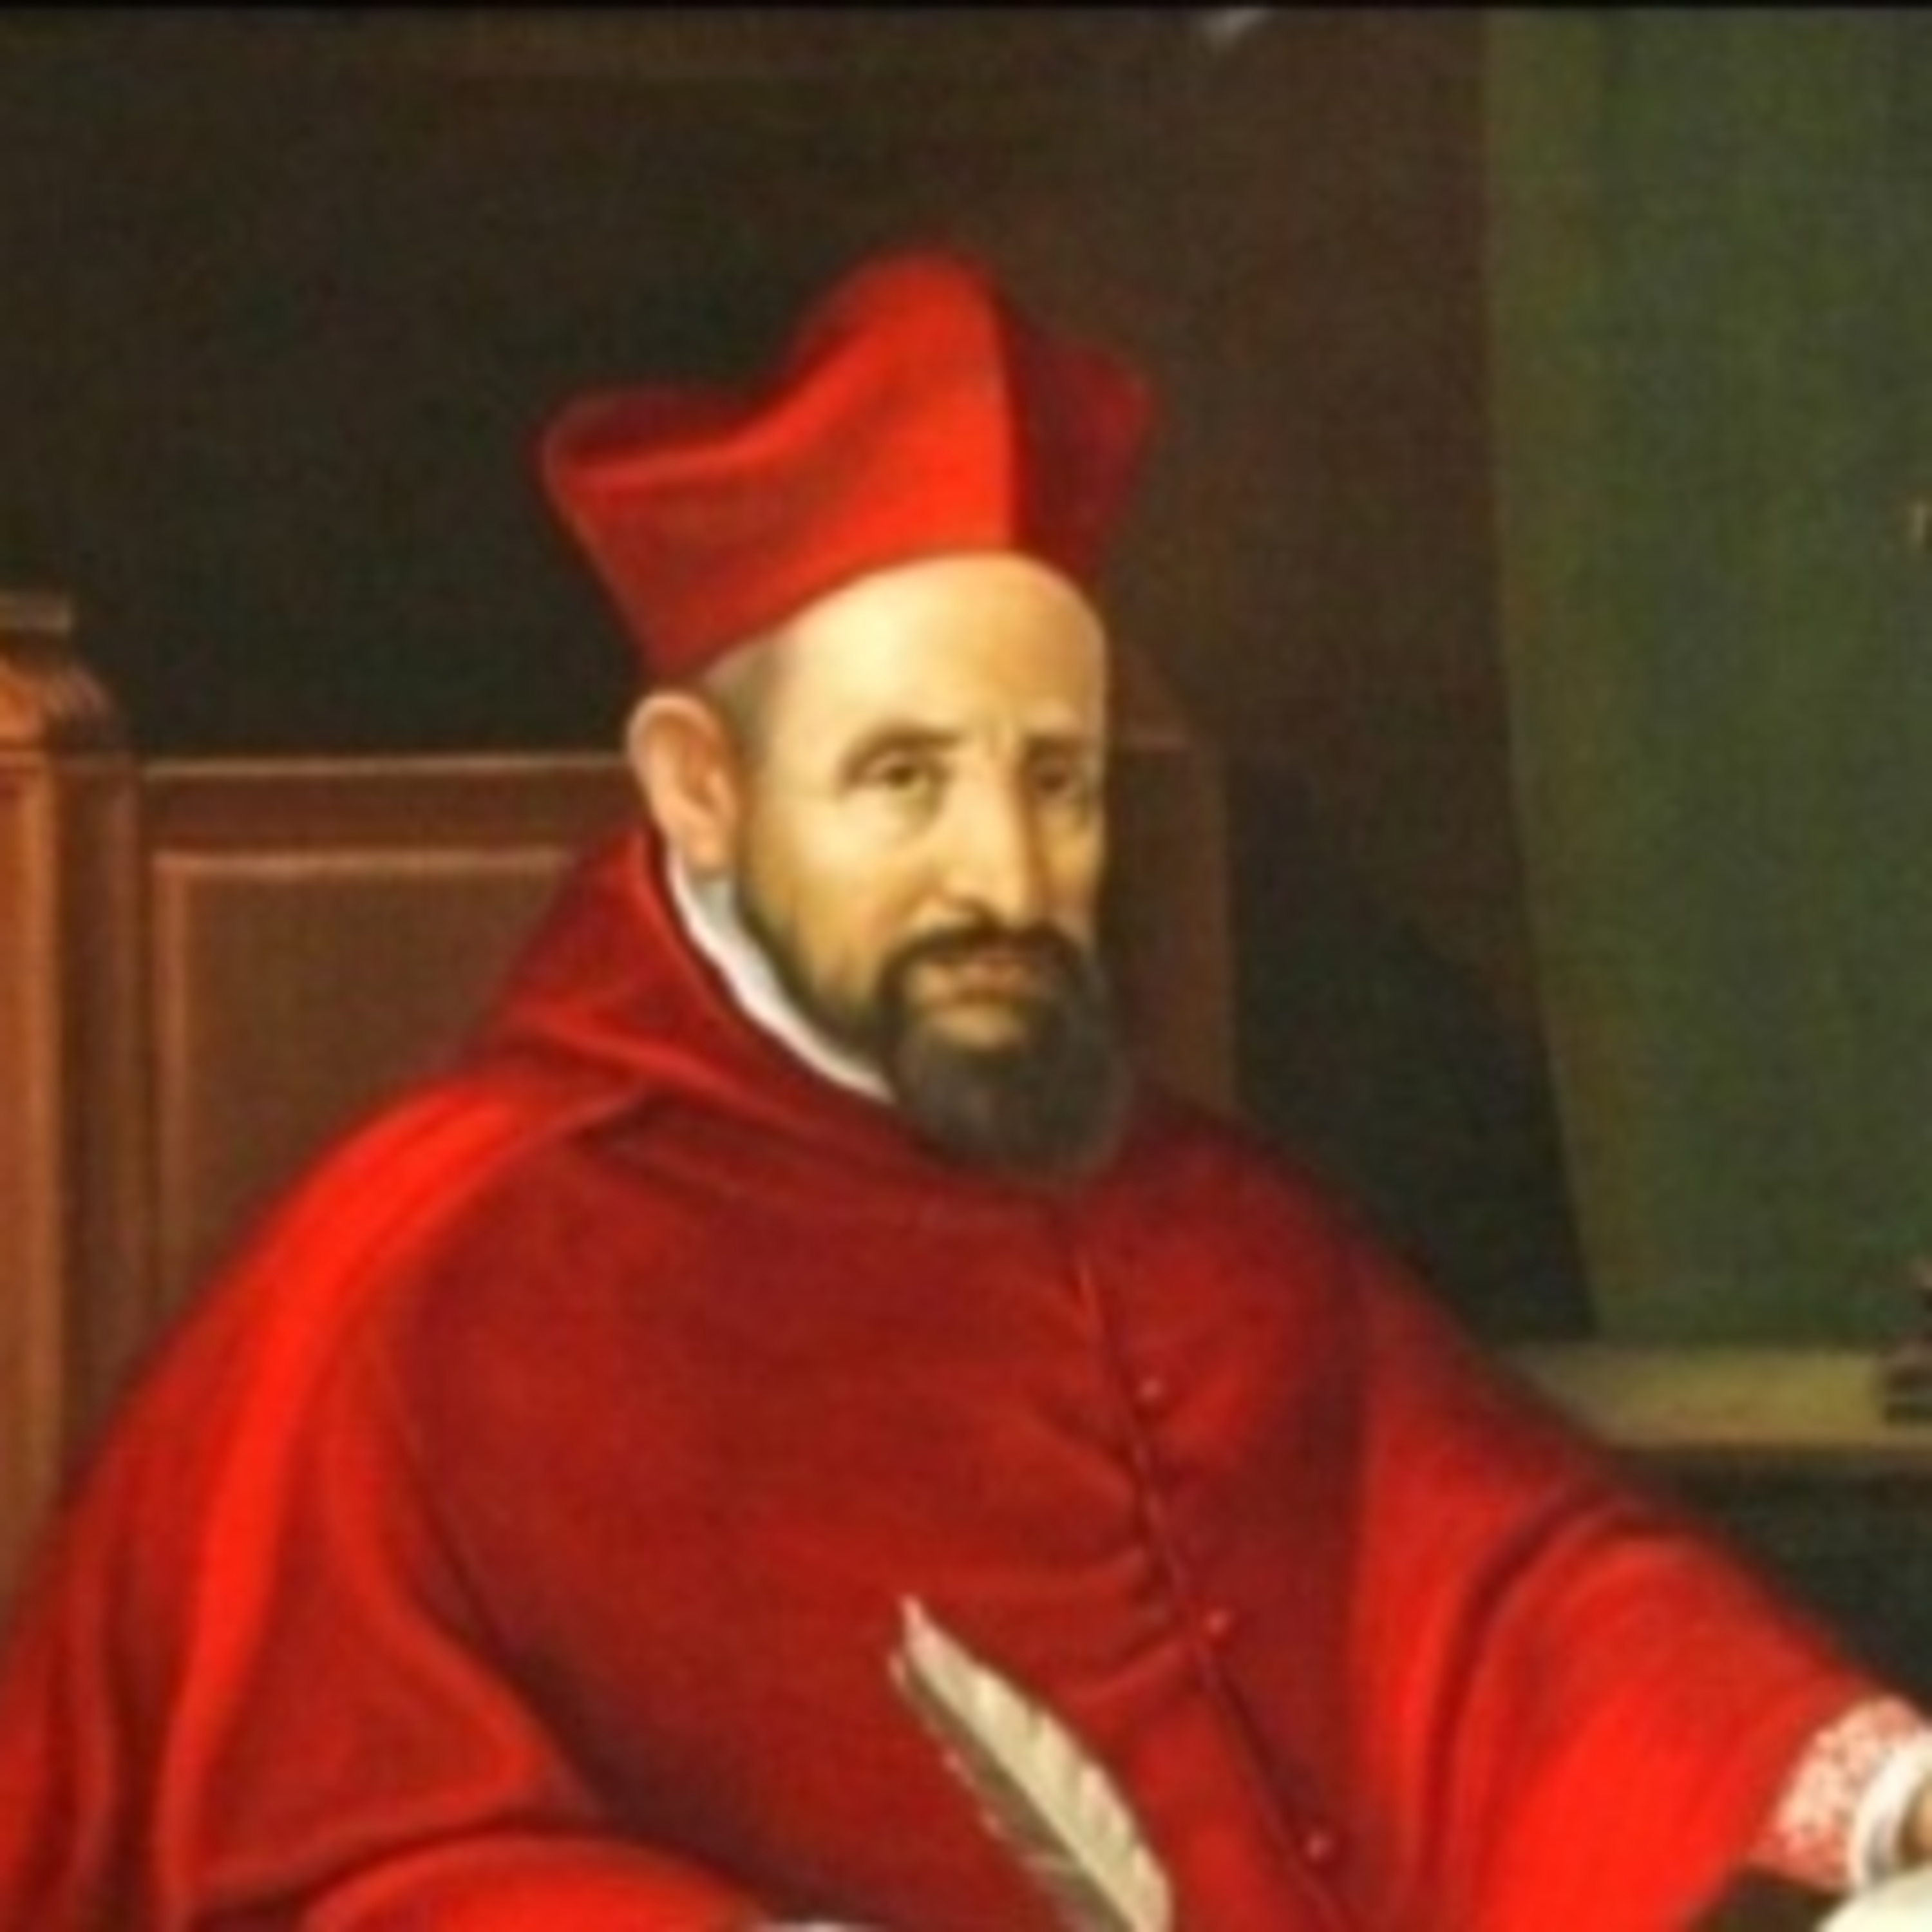 The Seven Words On The Cross - St. Robert Bellarmine - Fifth Word - I Thirst